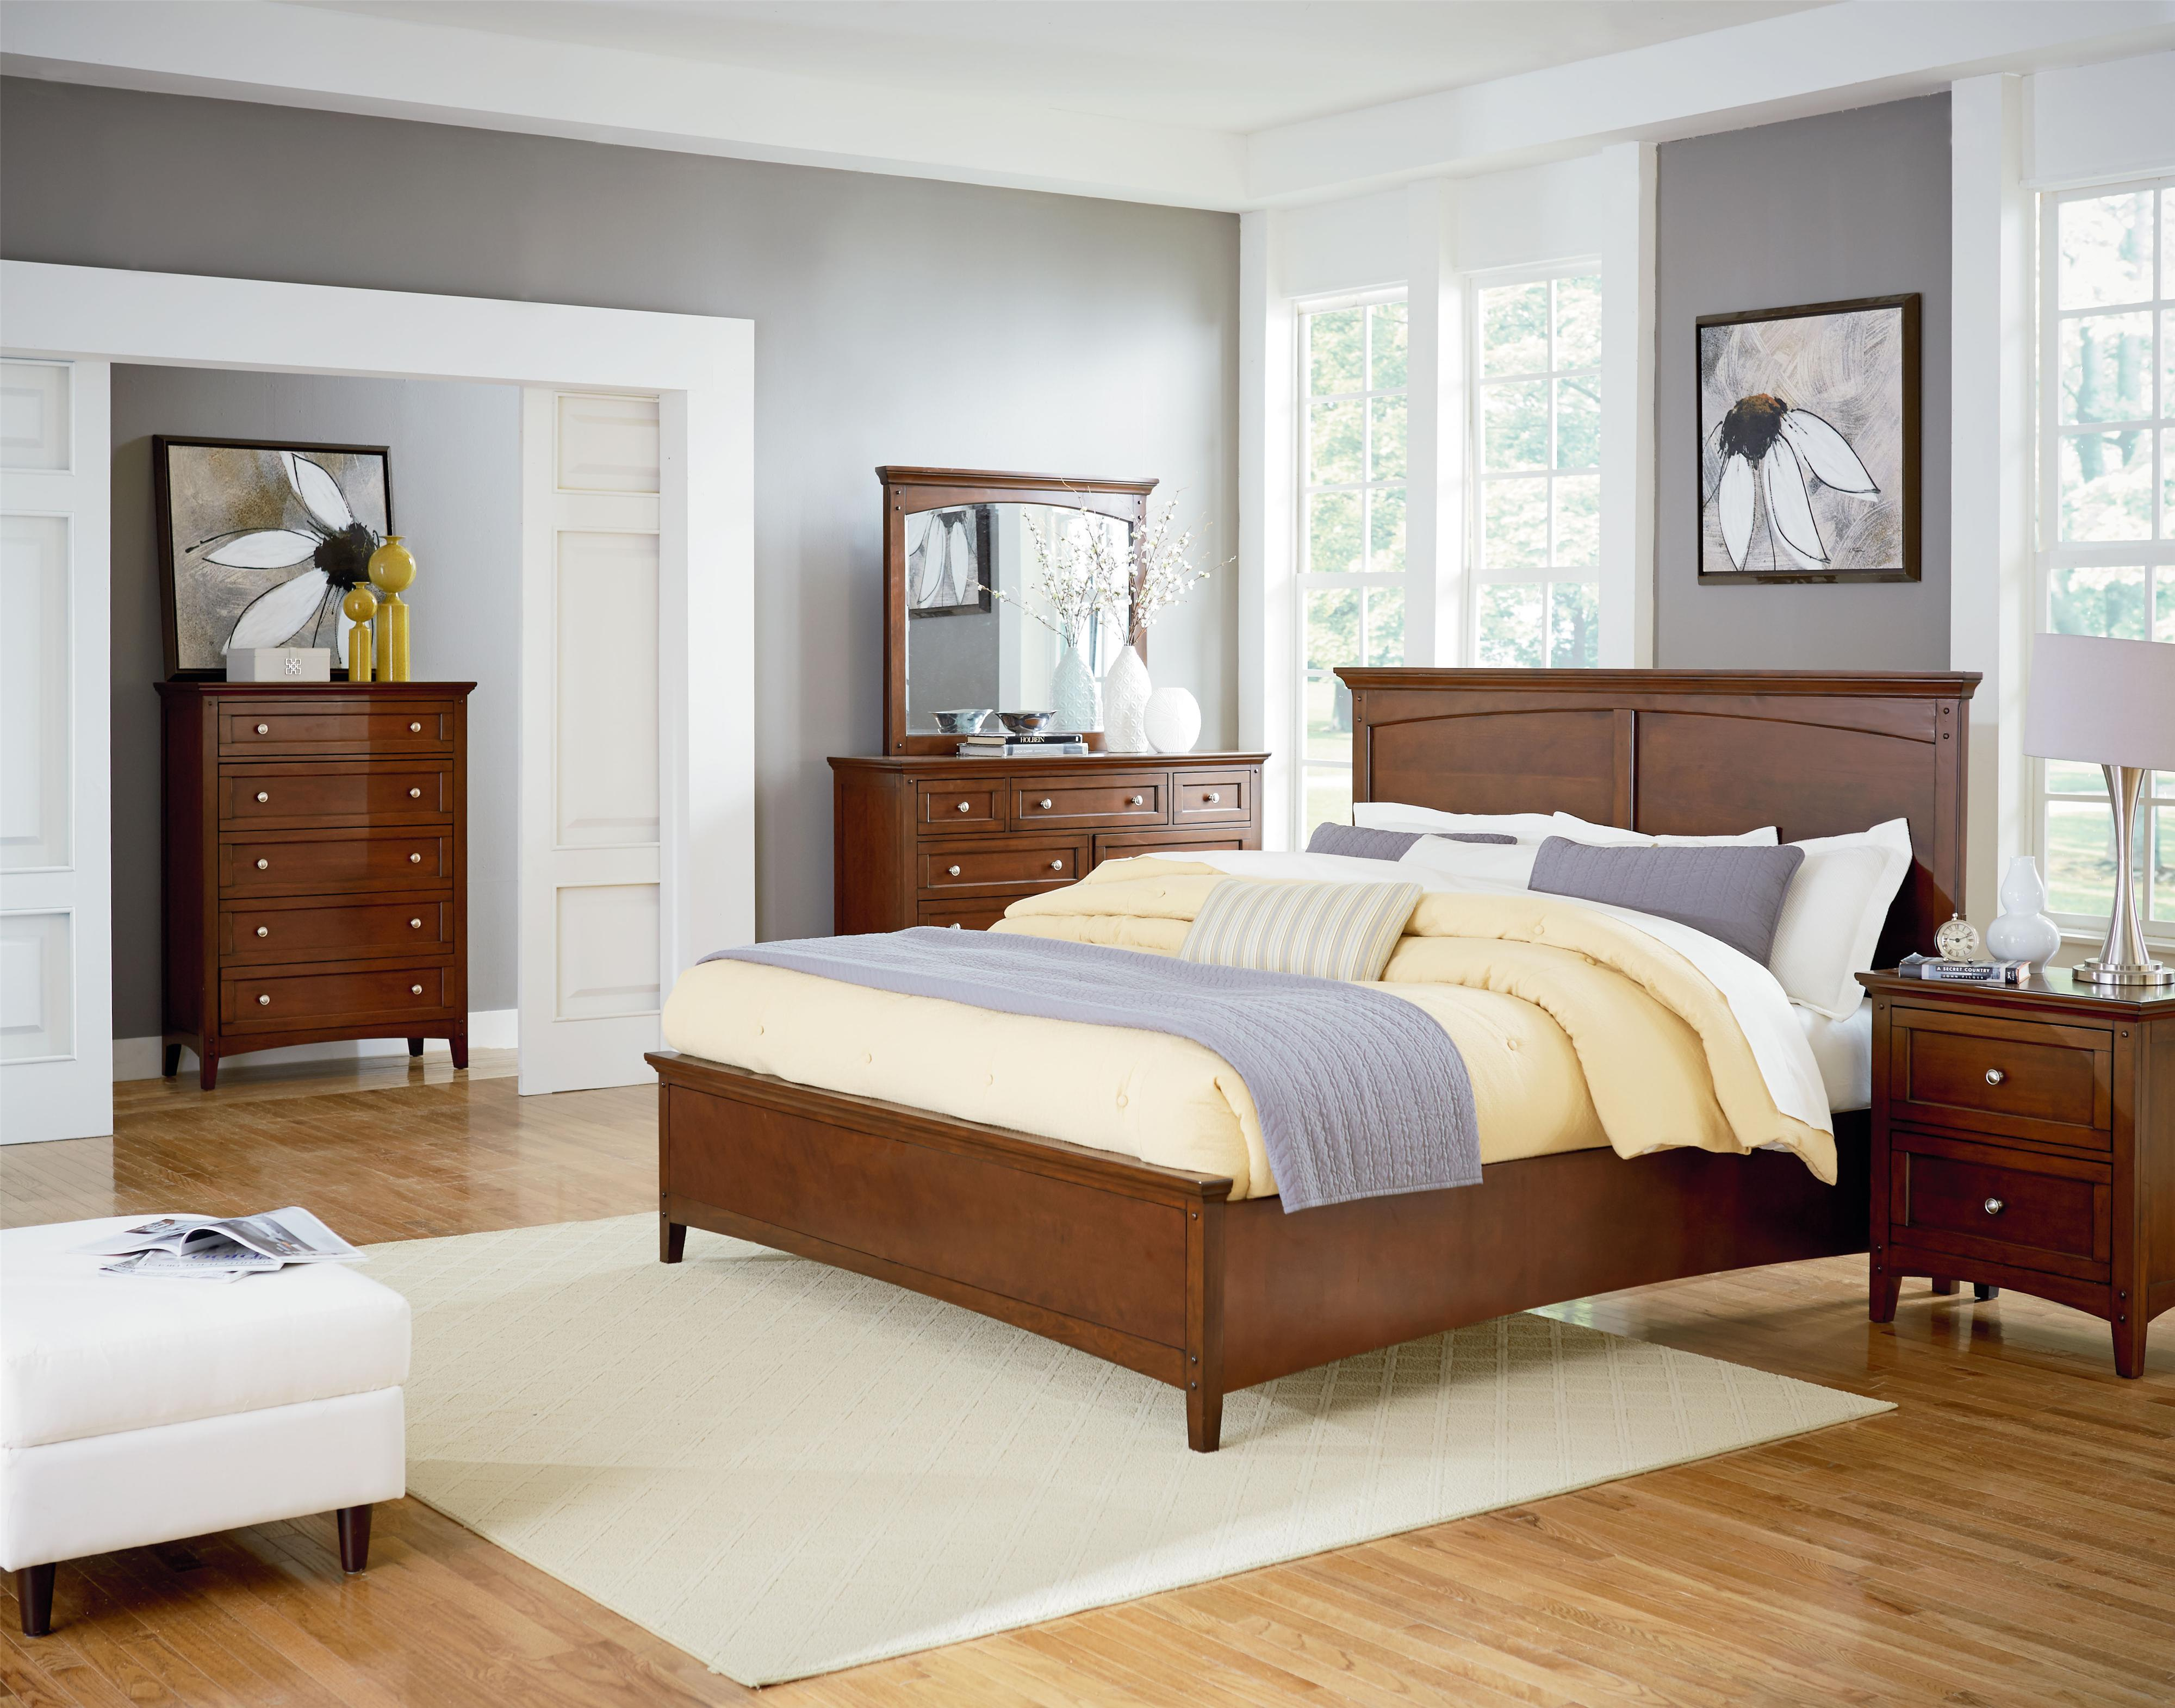 Standard Furniture Cooperstown King Bedroom Group - Item Number: 93800 K Bedroom Group 2